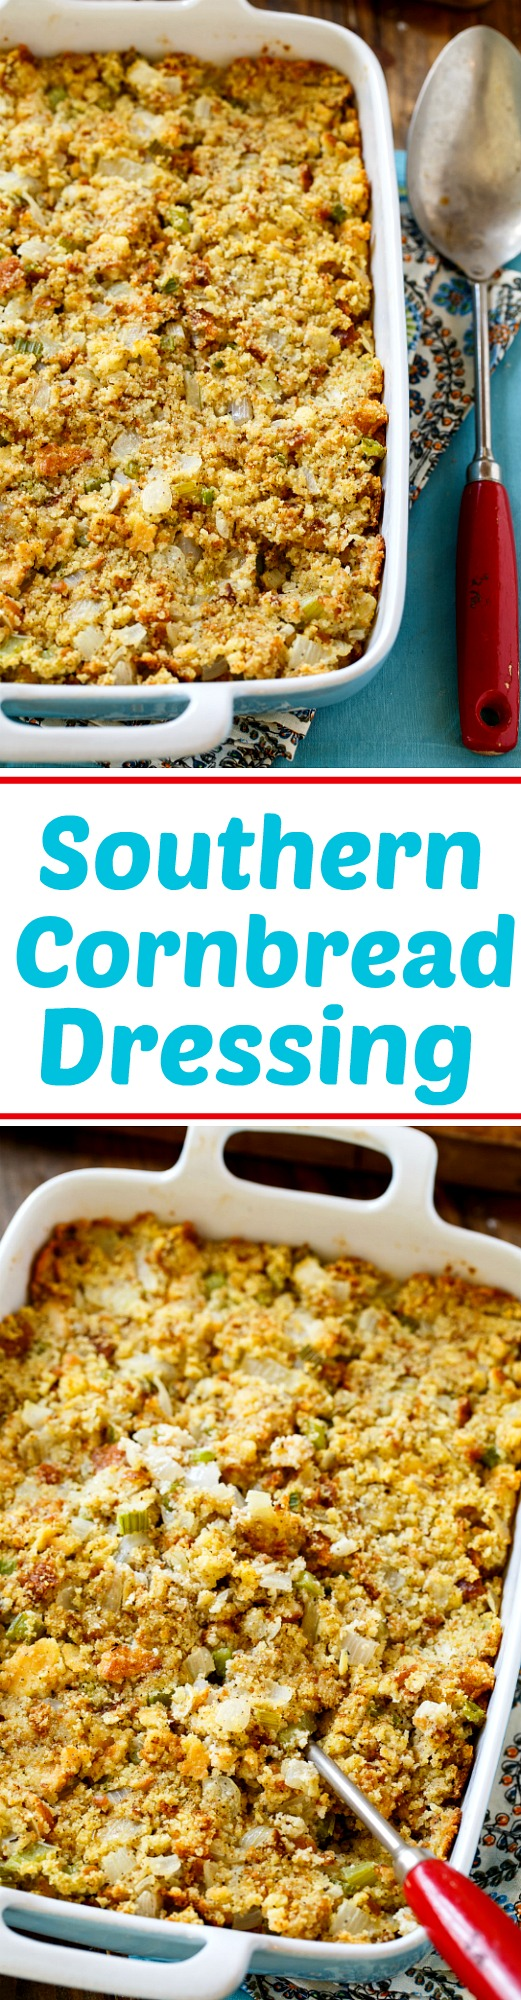 Southern Cornbread Dressing Spicy Southern Kitchen Recipe Cornbread Dressing Cornbread Dressing Southern Dressing Recipes Cornbread